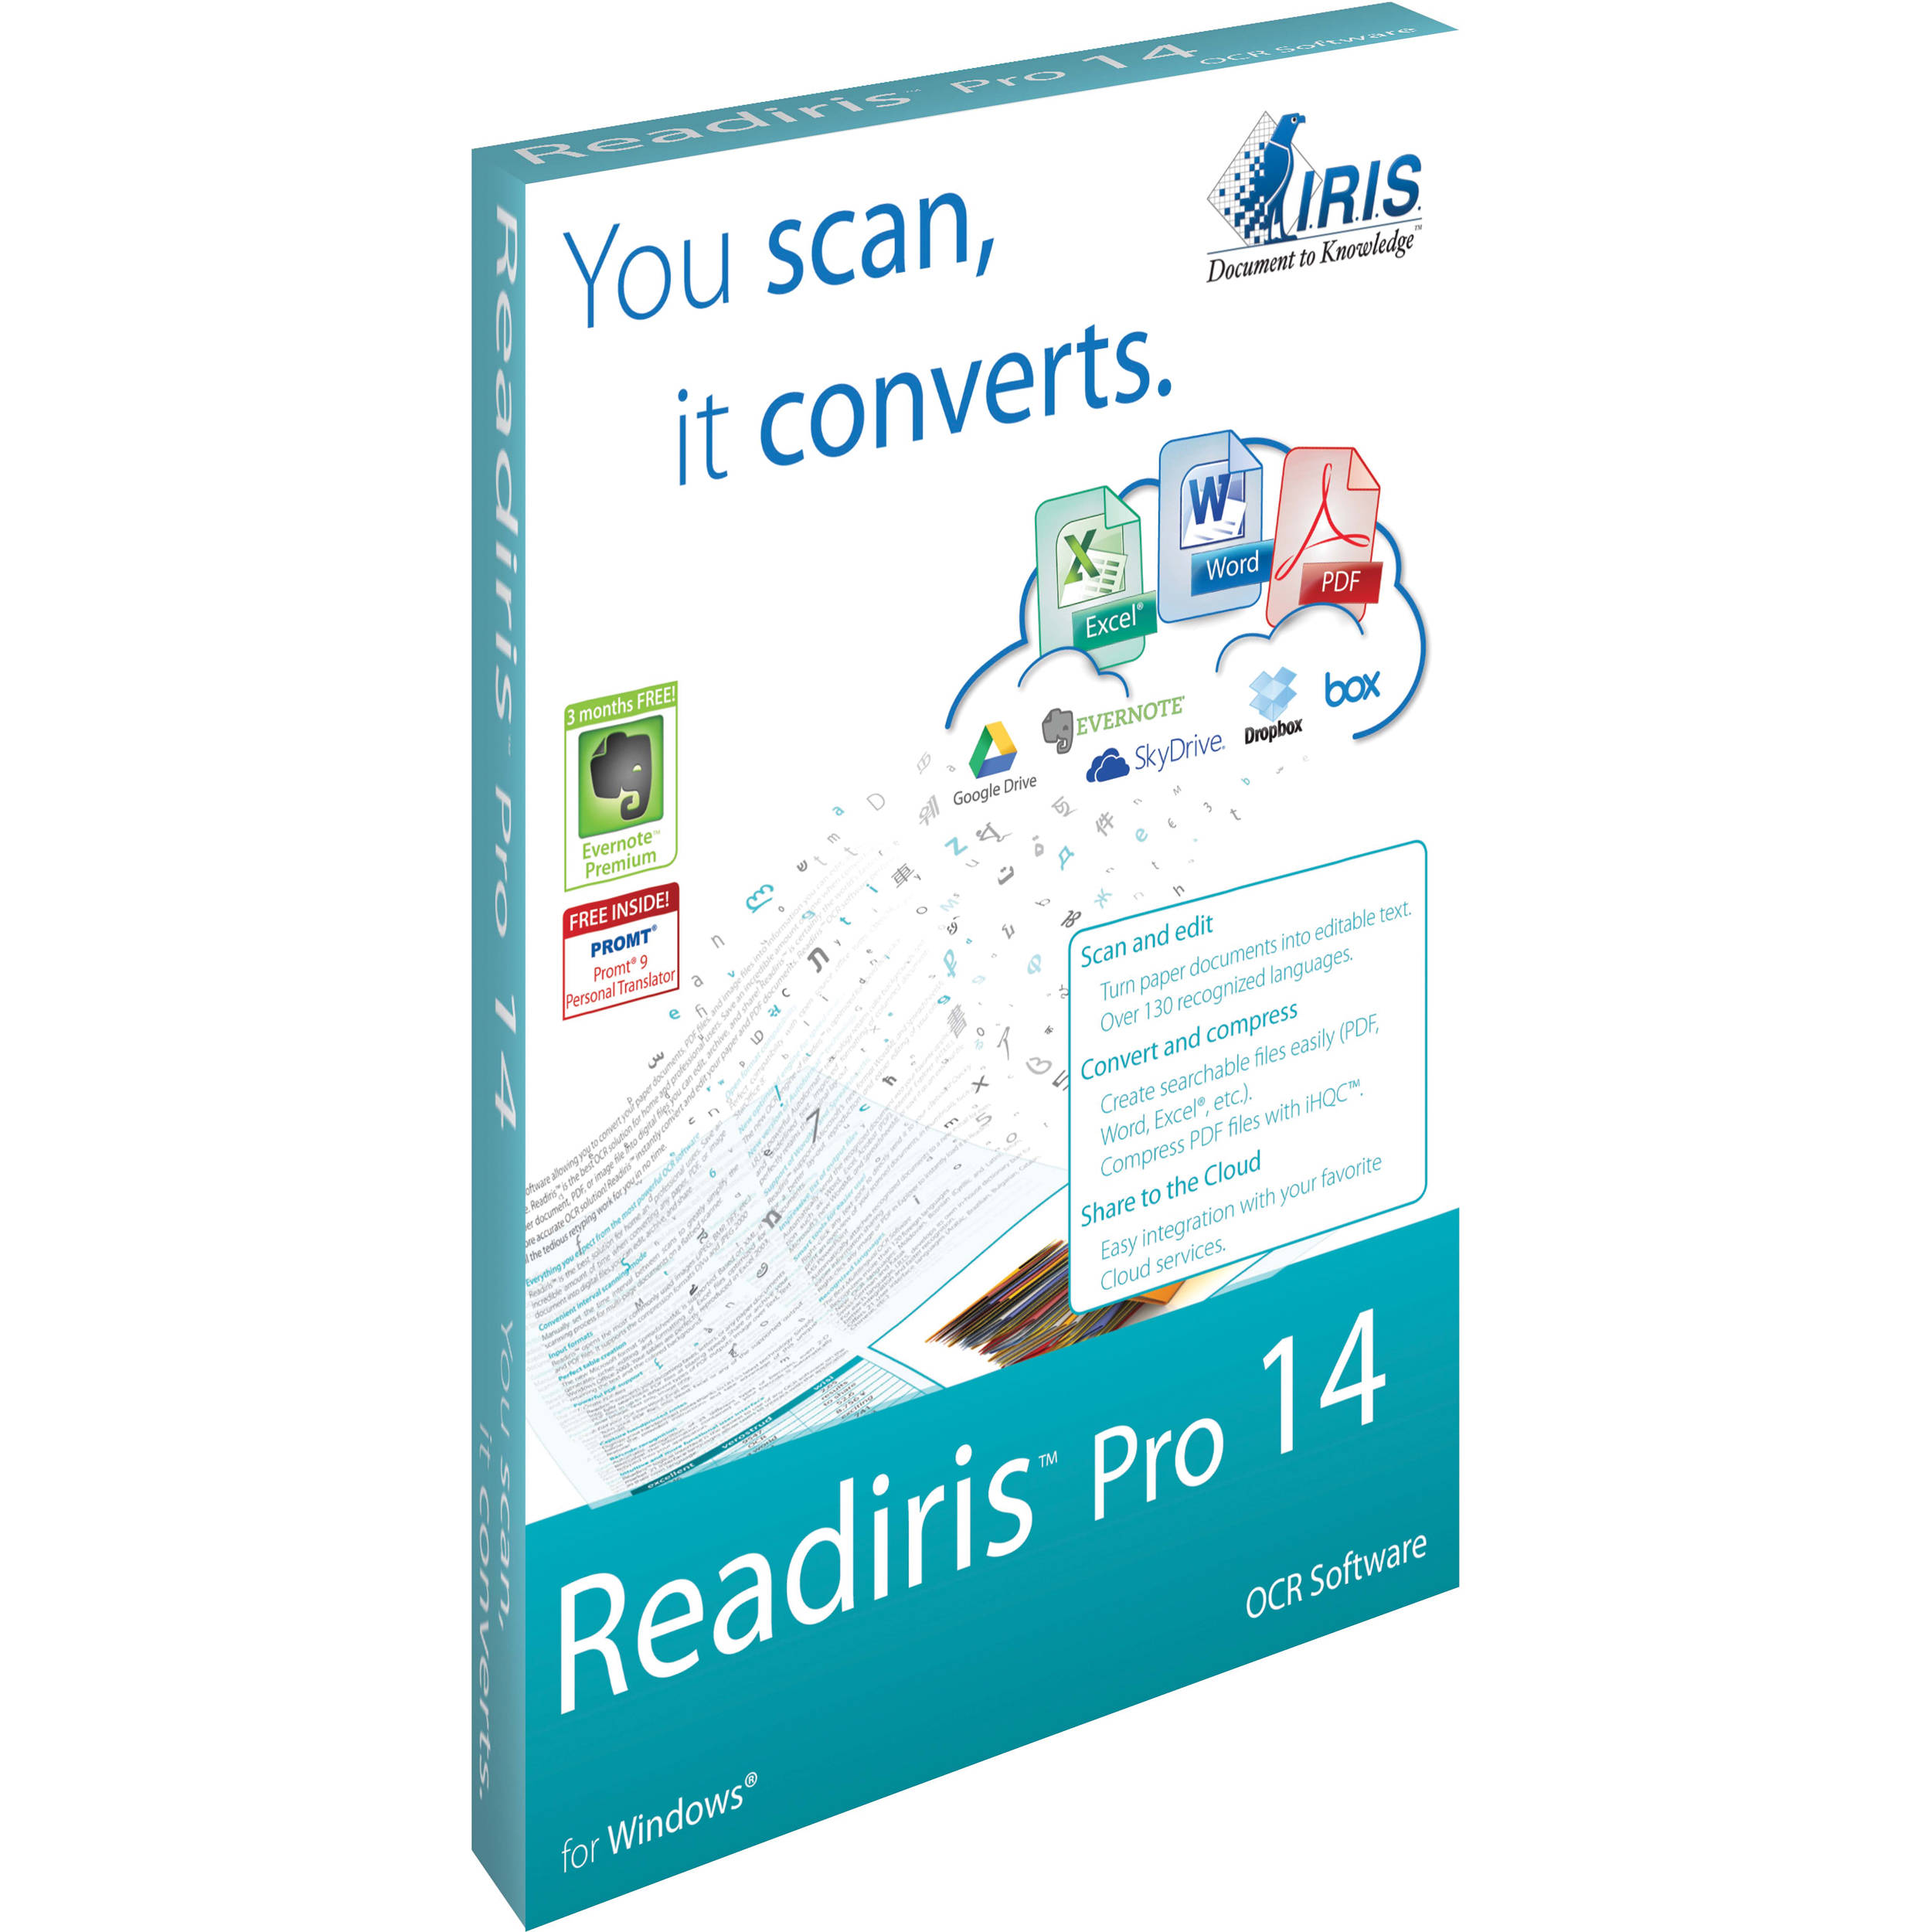 Readiris Pro 14 for HP Download and activation